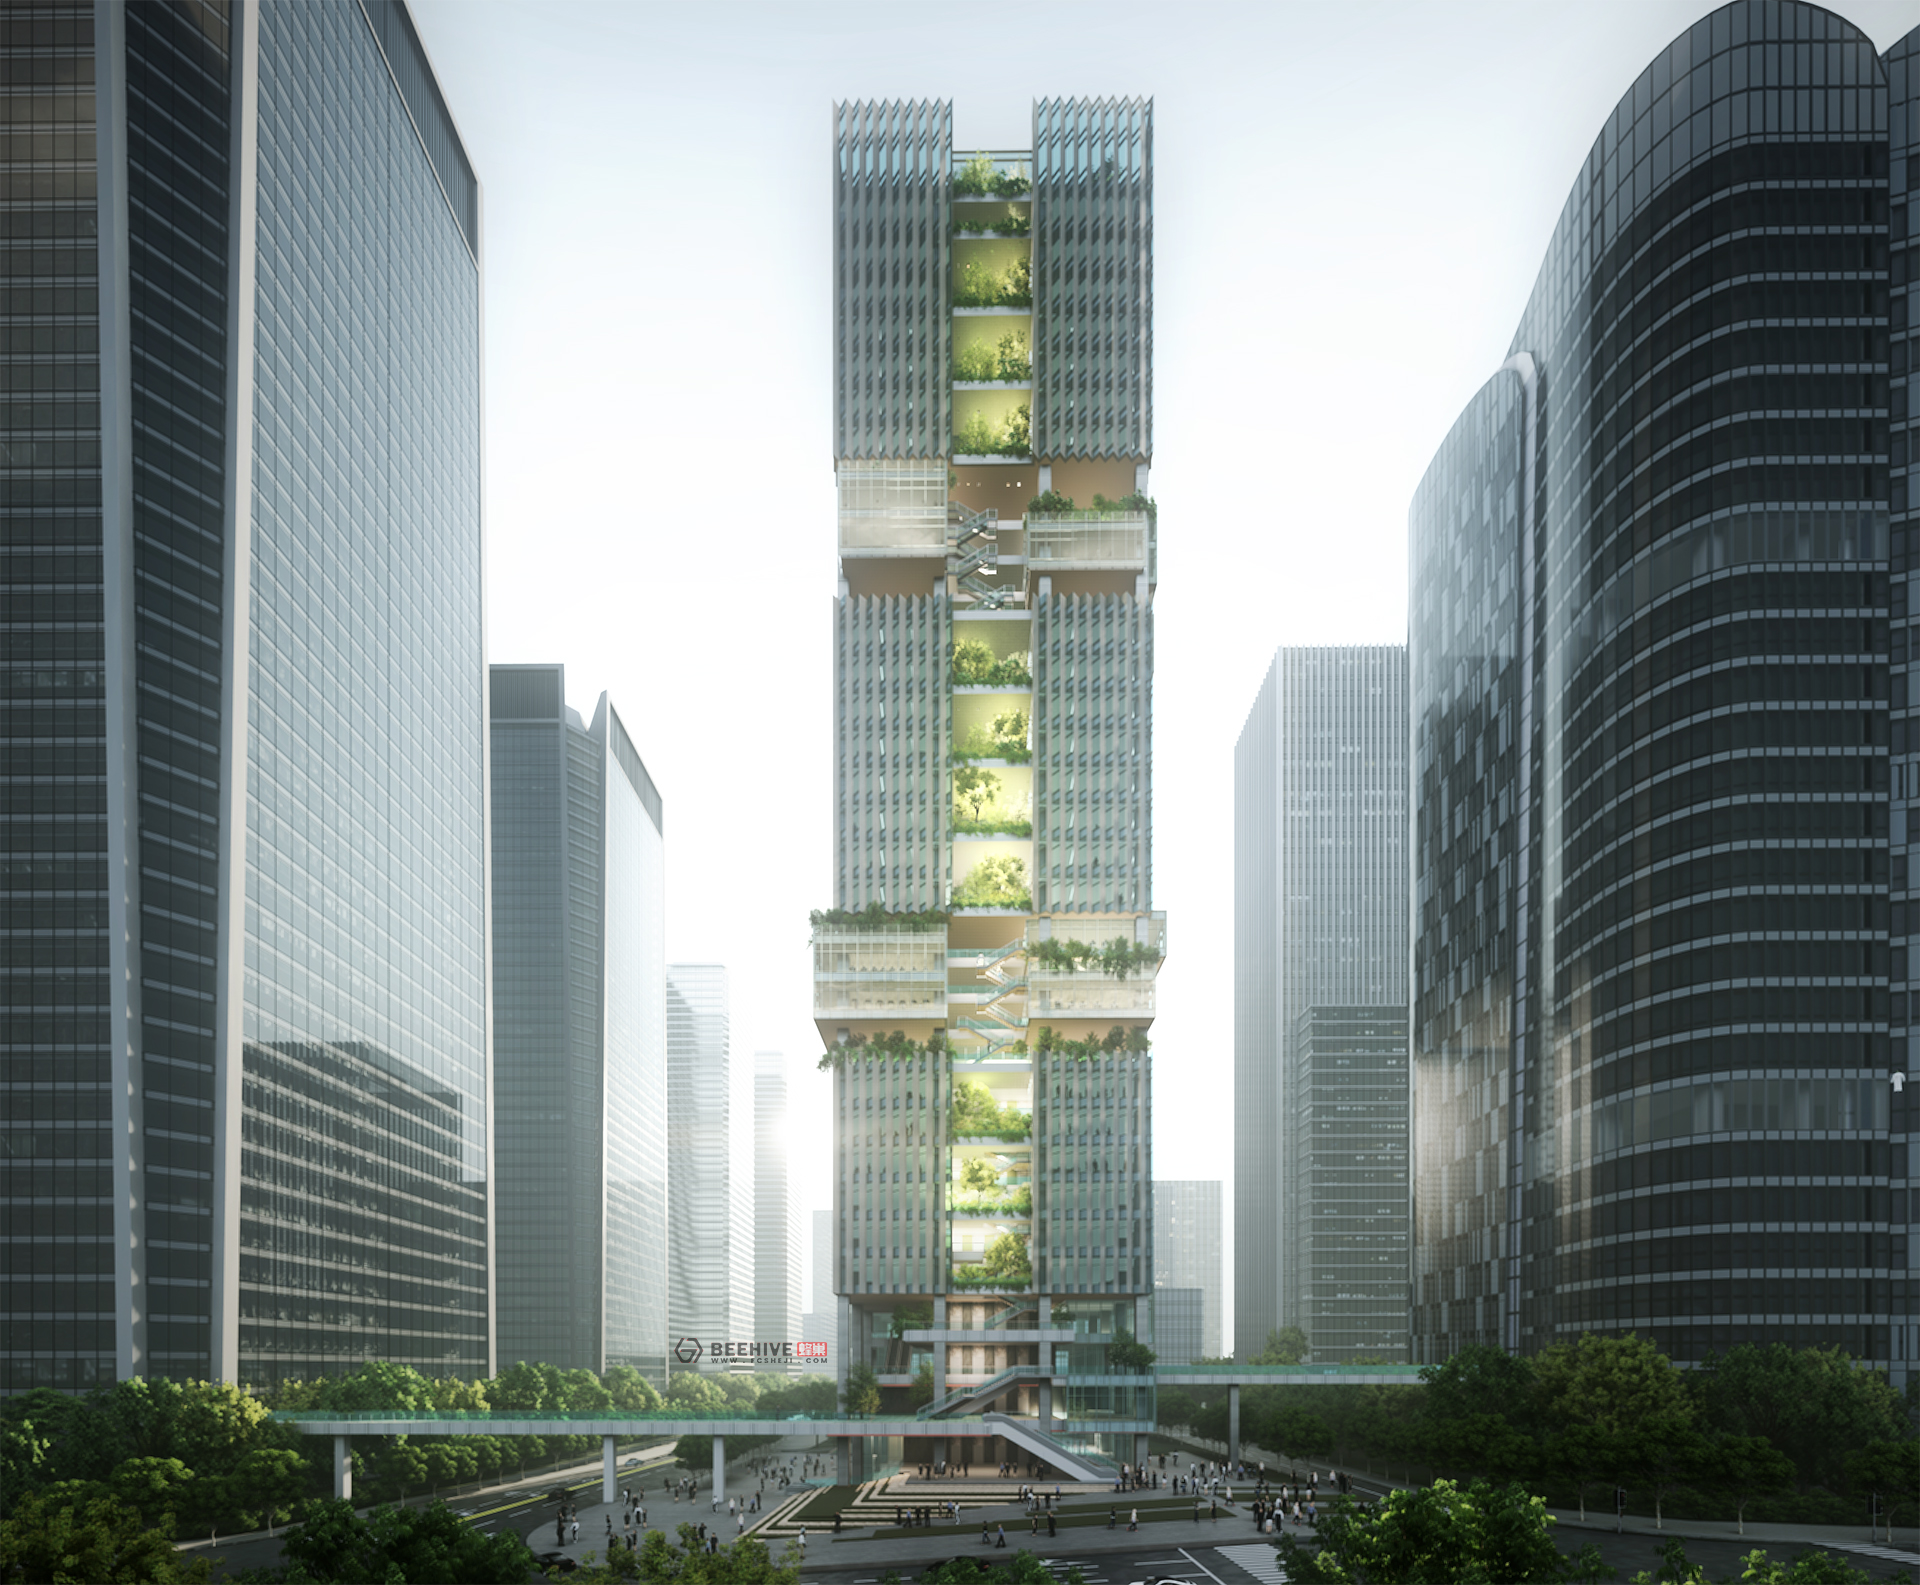 Shenzhen Transsion Tower, design by Aedas. Rendered in Lumion by Beehive